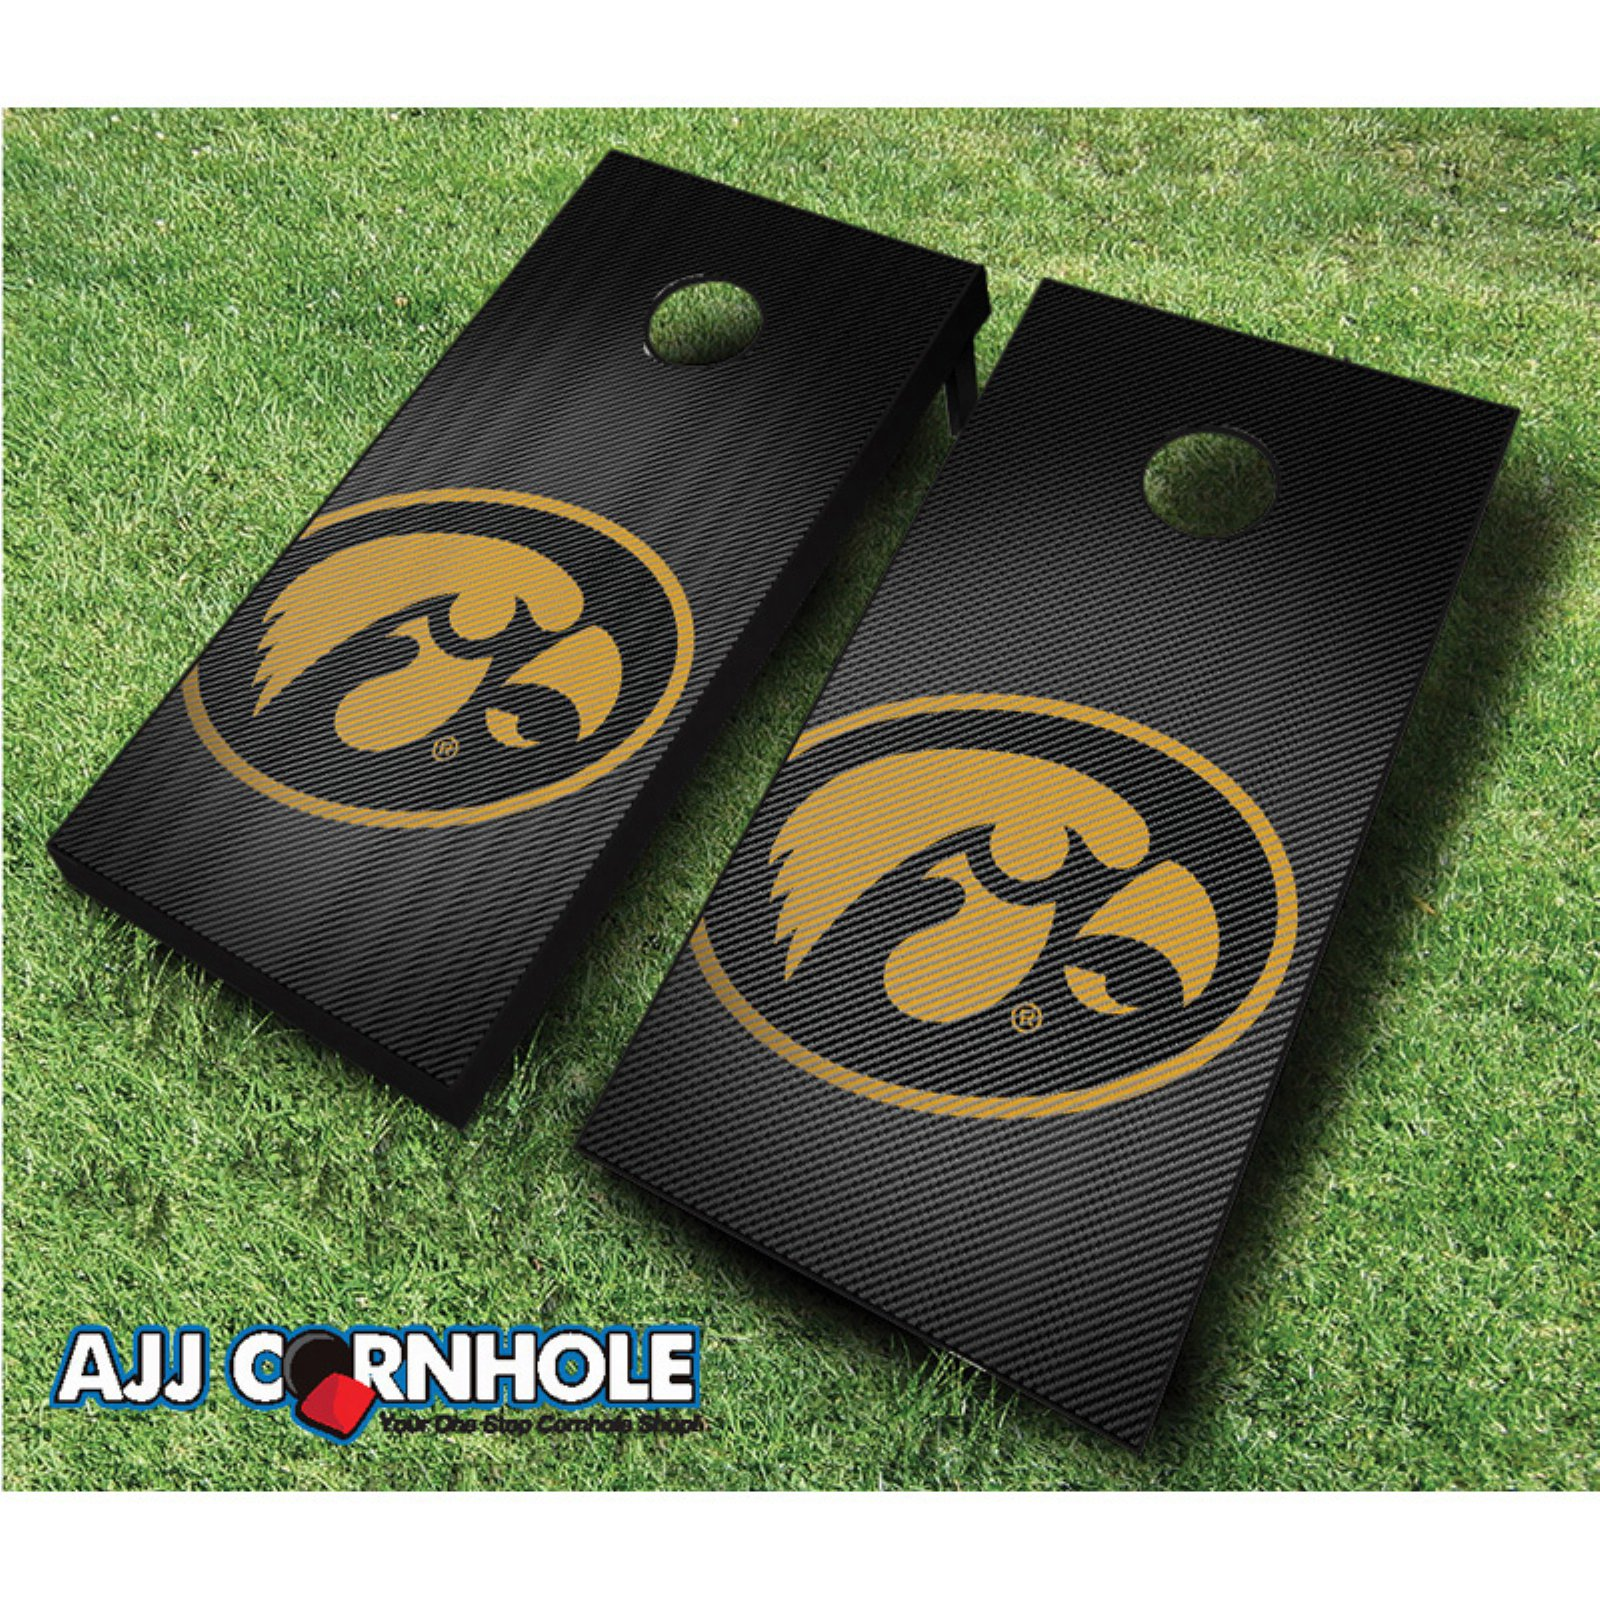 AJJ Cornhole Iowa Slanted Cornhole Set by